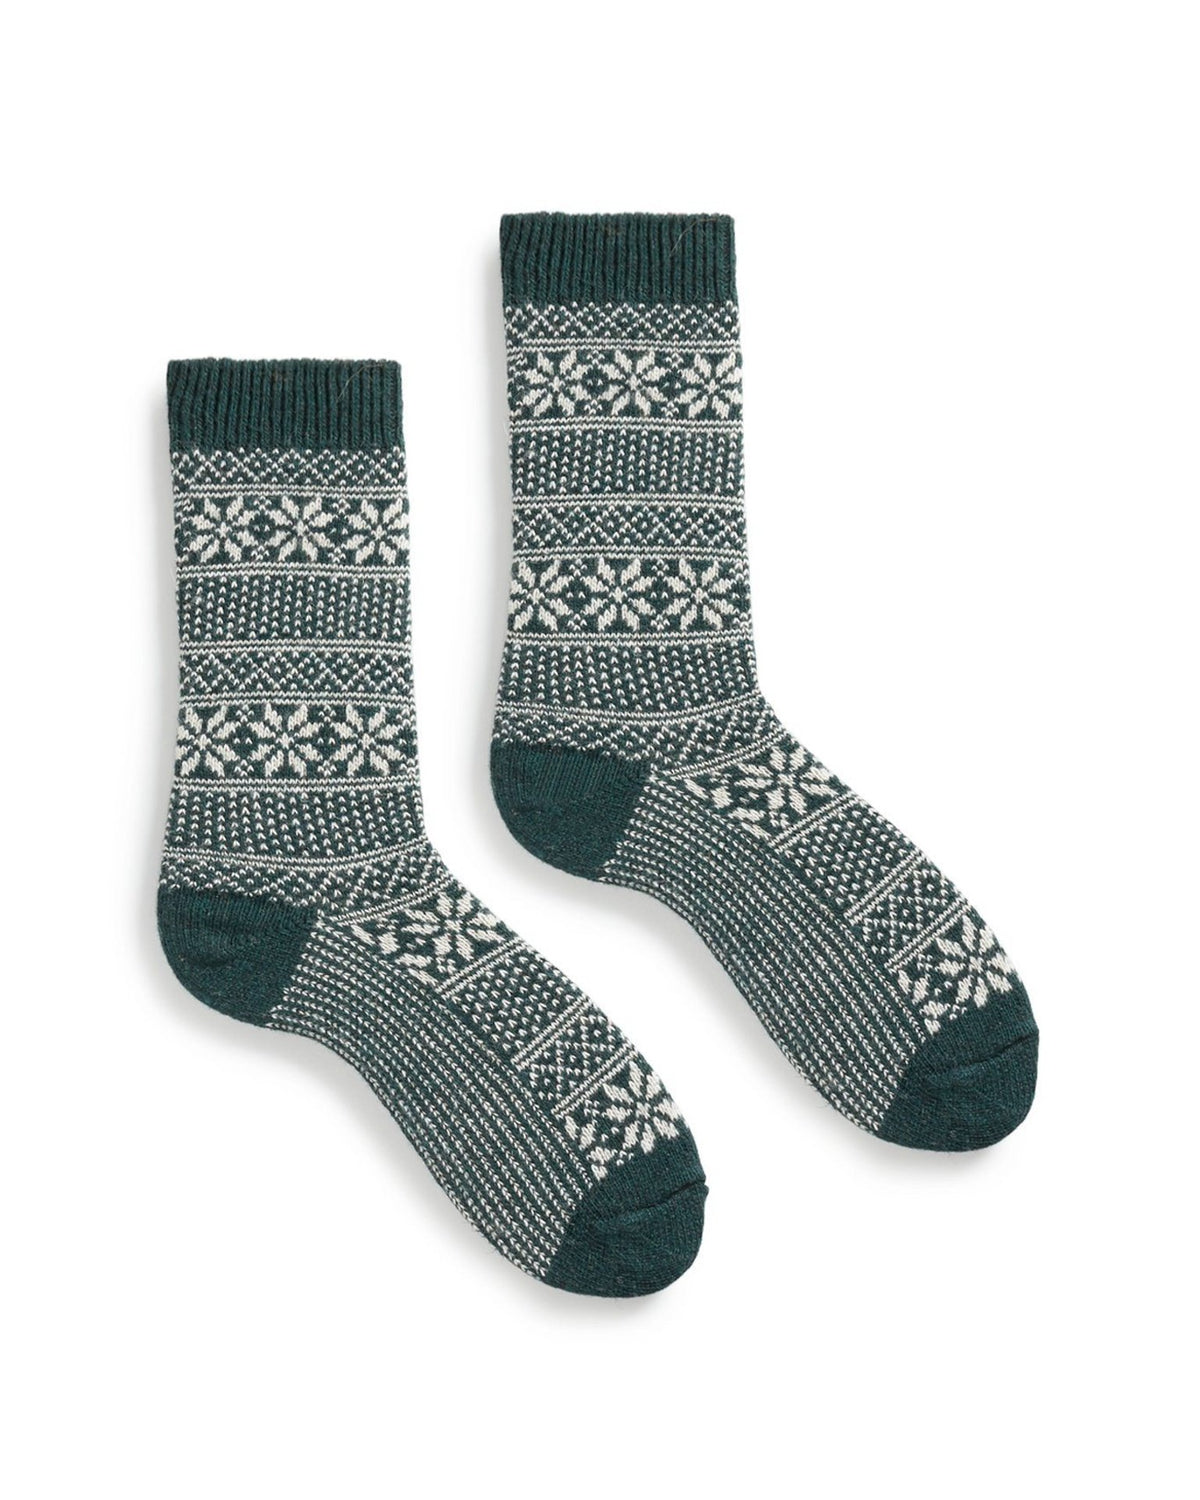 lisa b. Accessories Ivy Stripe Snowflake Socks in Ivy